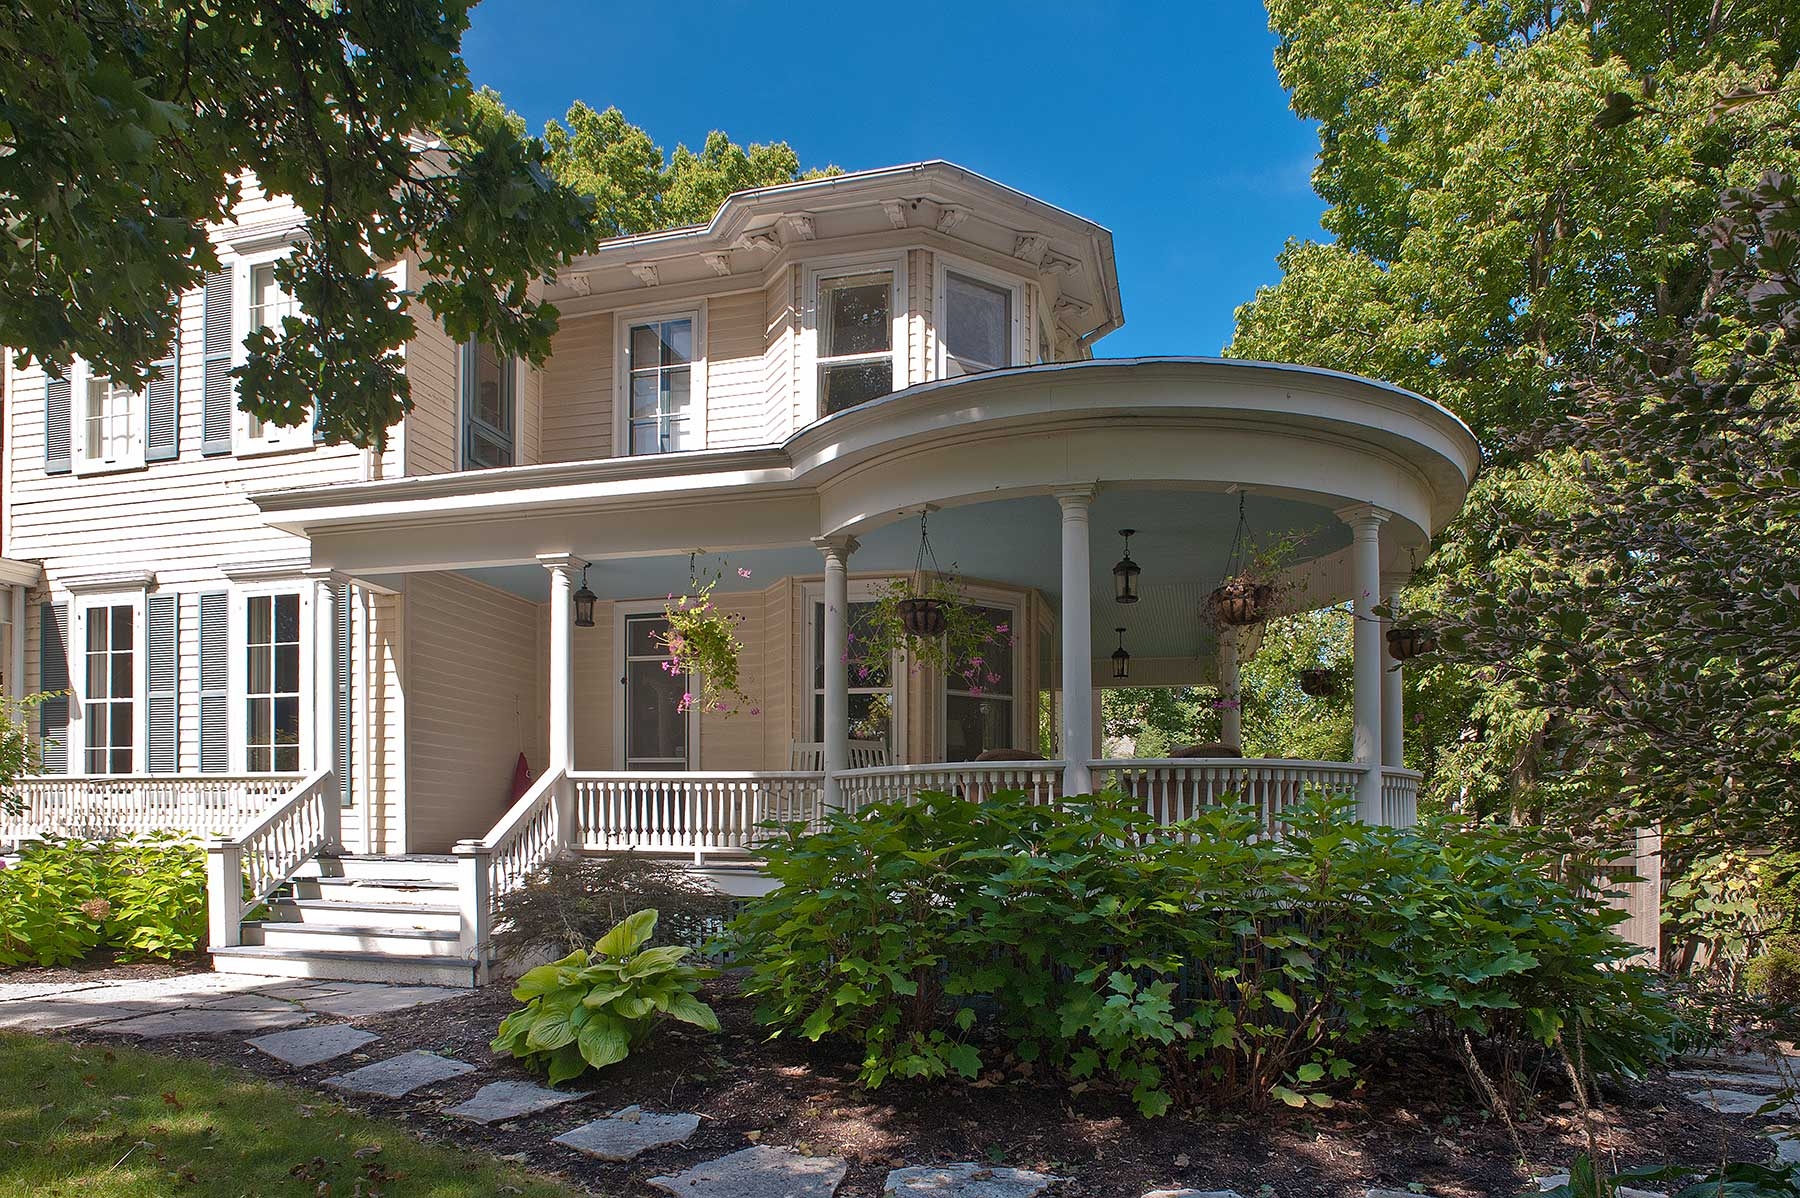 Using historic photos, a replacement porch was created to re-create some of the slpendor of this 1850s doctor's home.